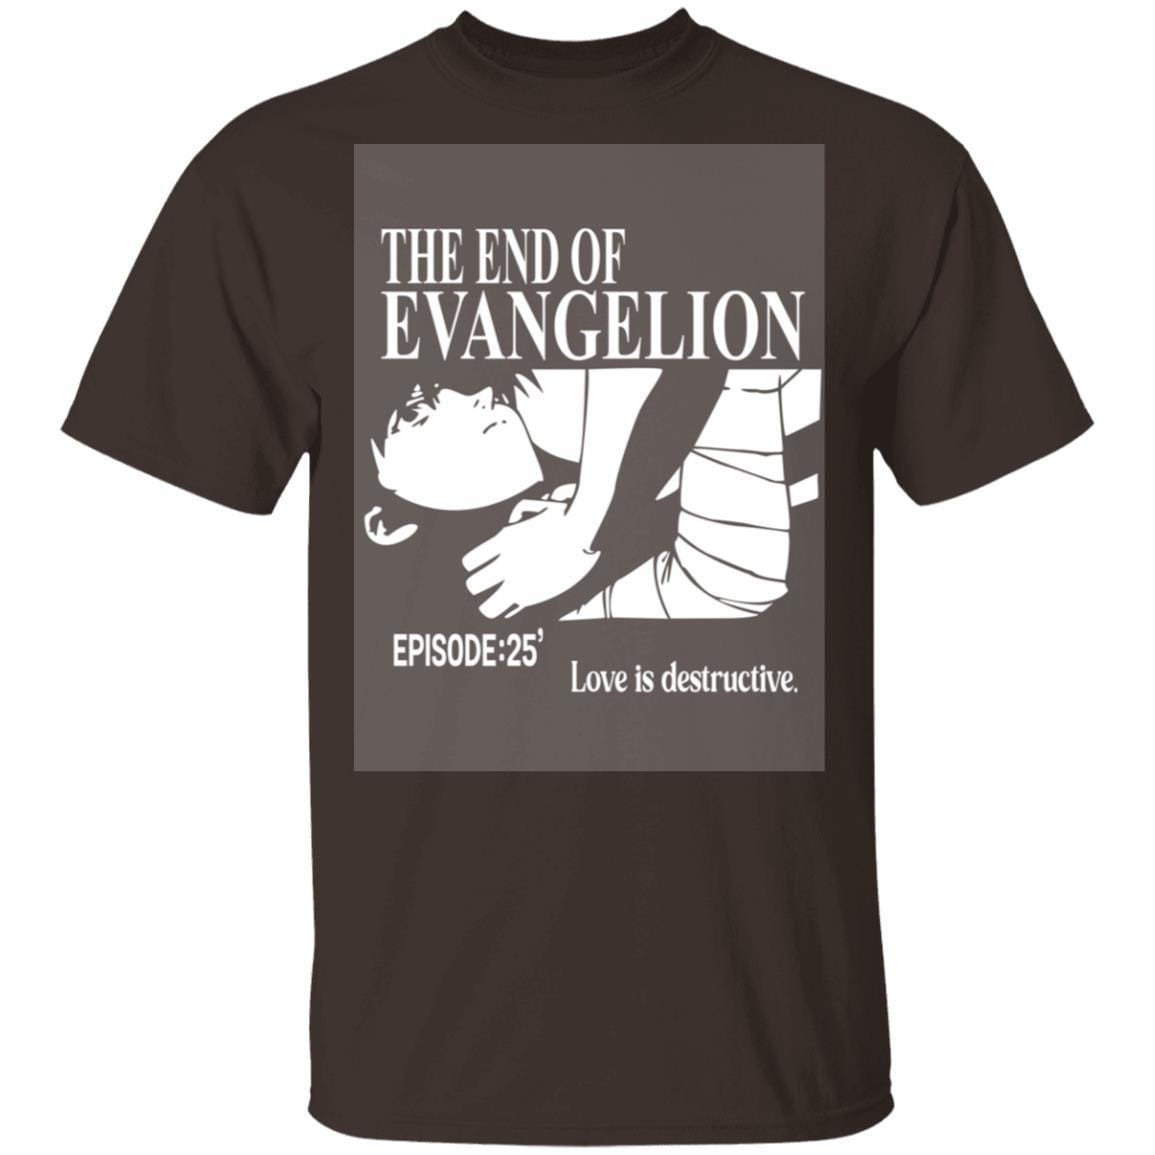 The End Of Evangelion Episode 25 Love Is Destructive T-Shirts, Hoodies 1049-9956-91821637-48152 - Tee Ript